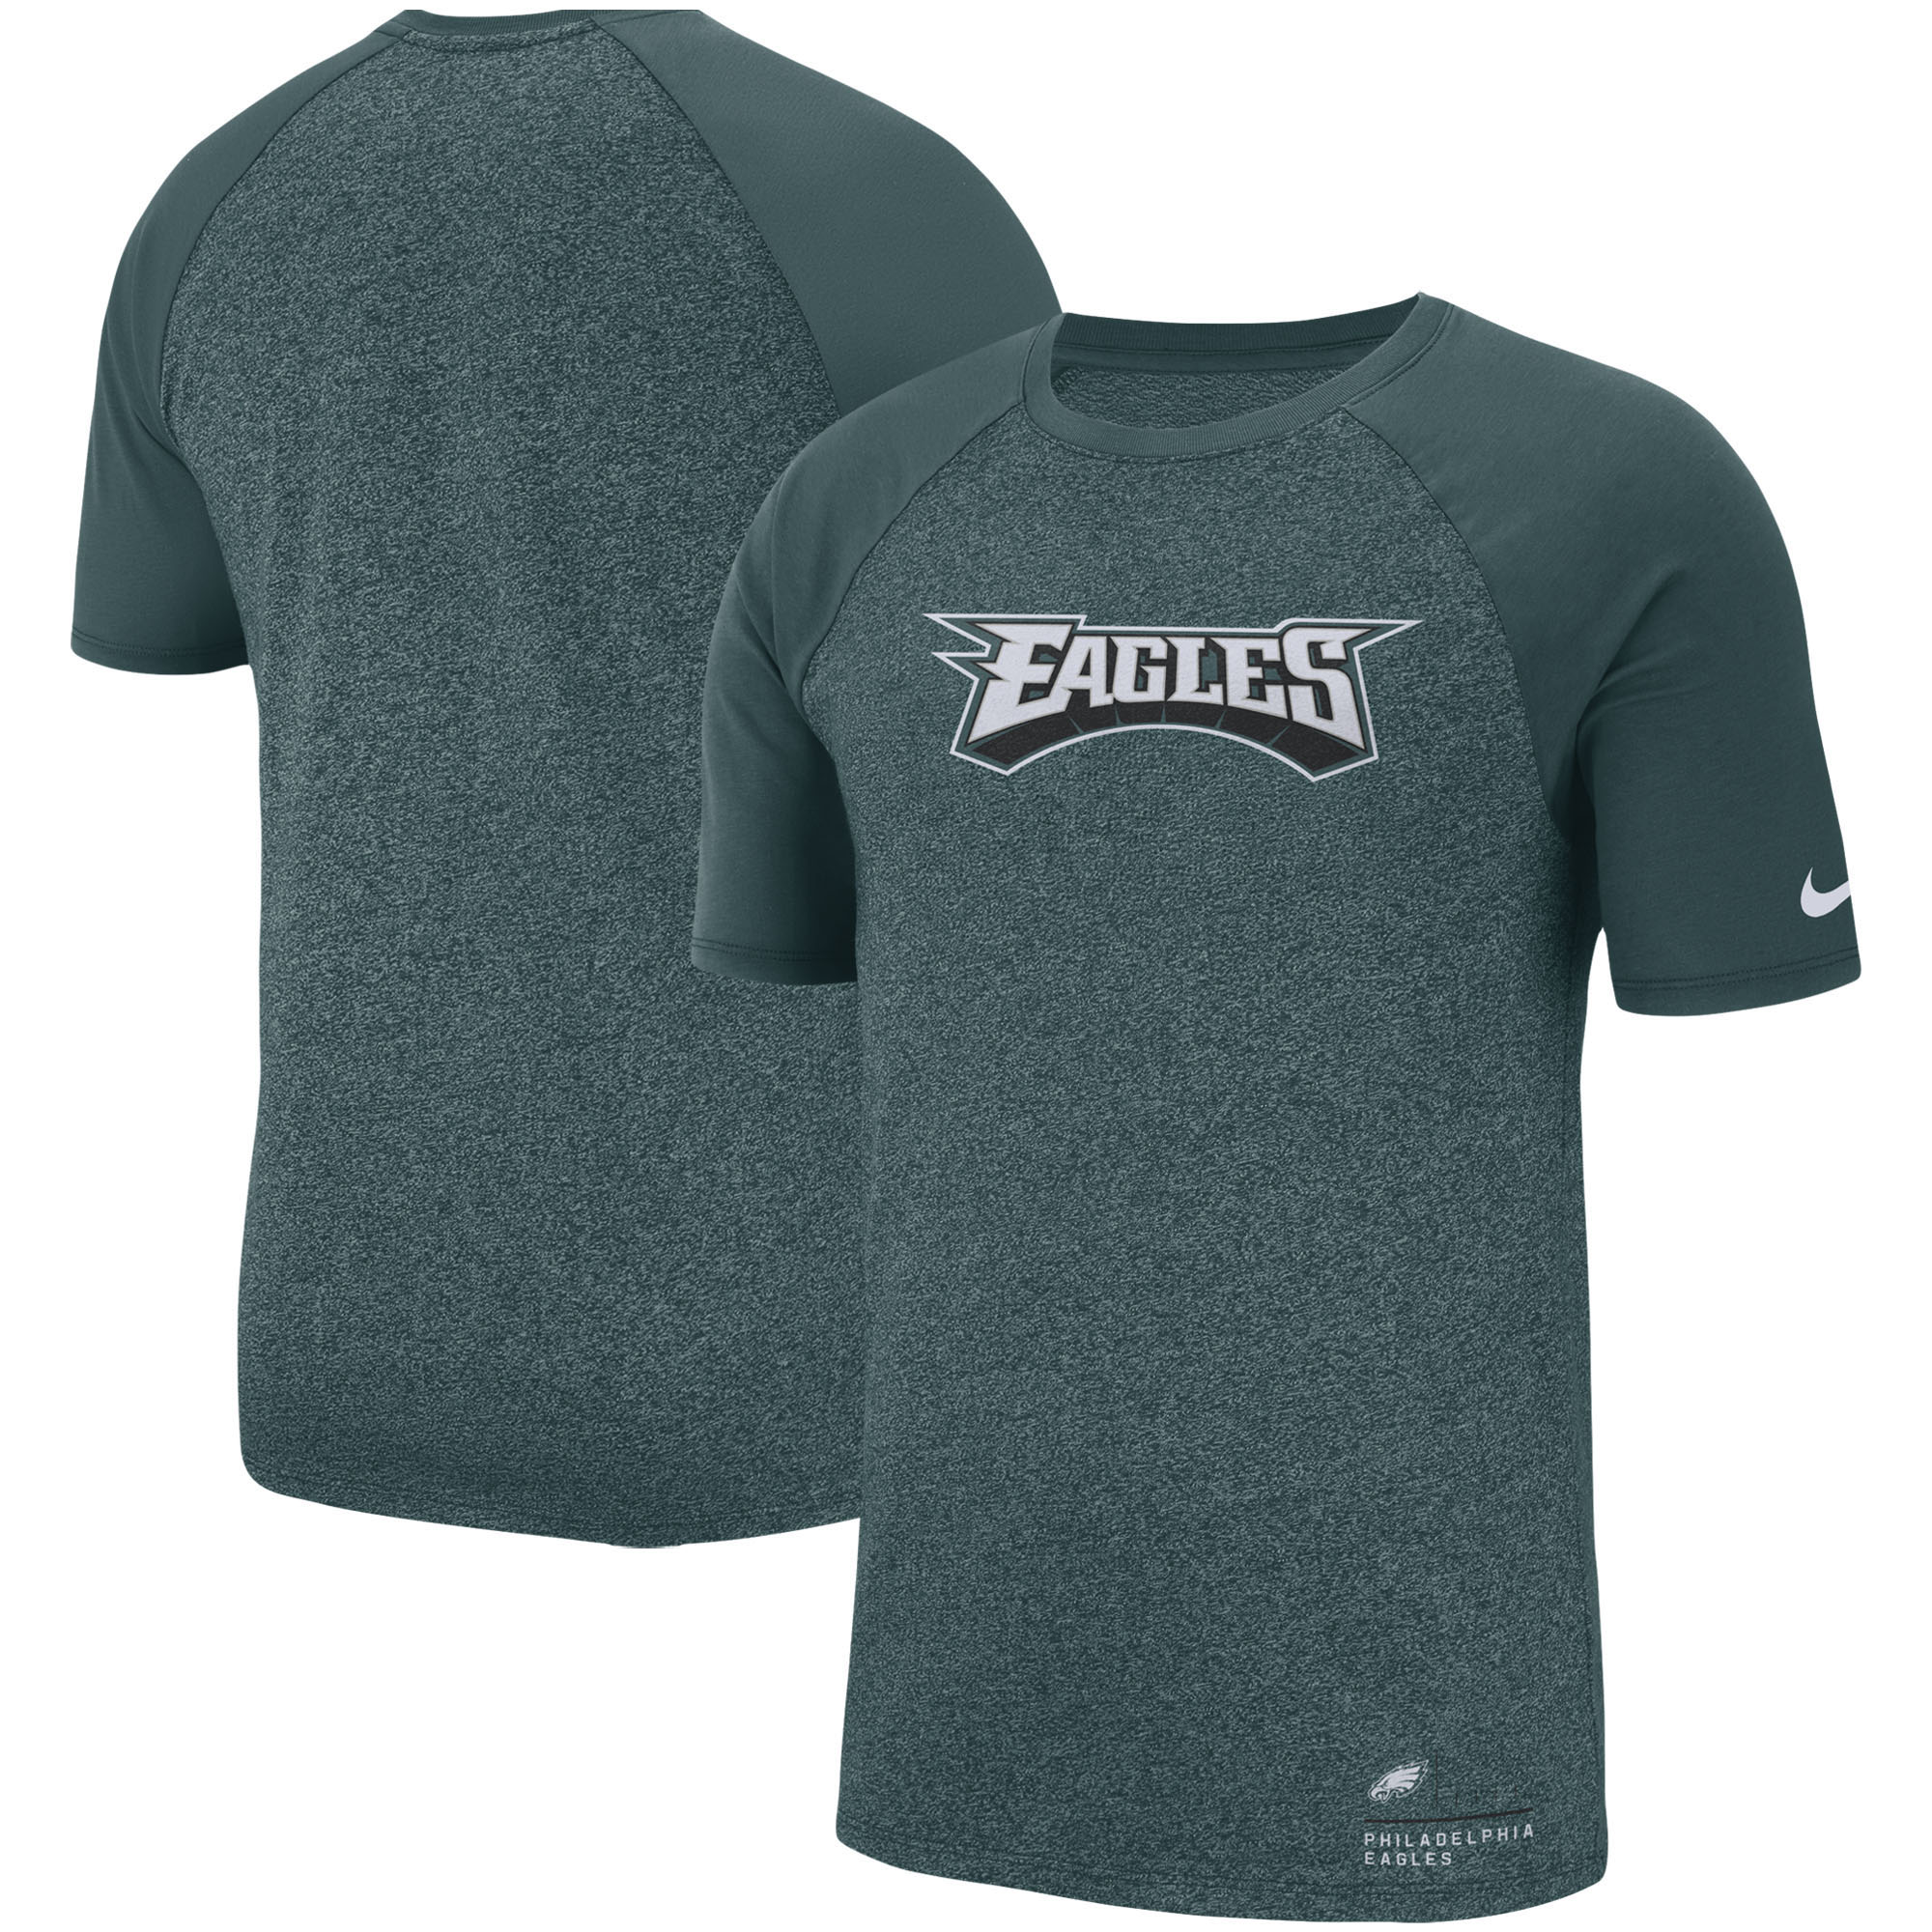 Philadelphia Eagles Nike Fan Gear Marled Raglan T-Shirt - Heathered Midnight Green